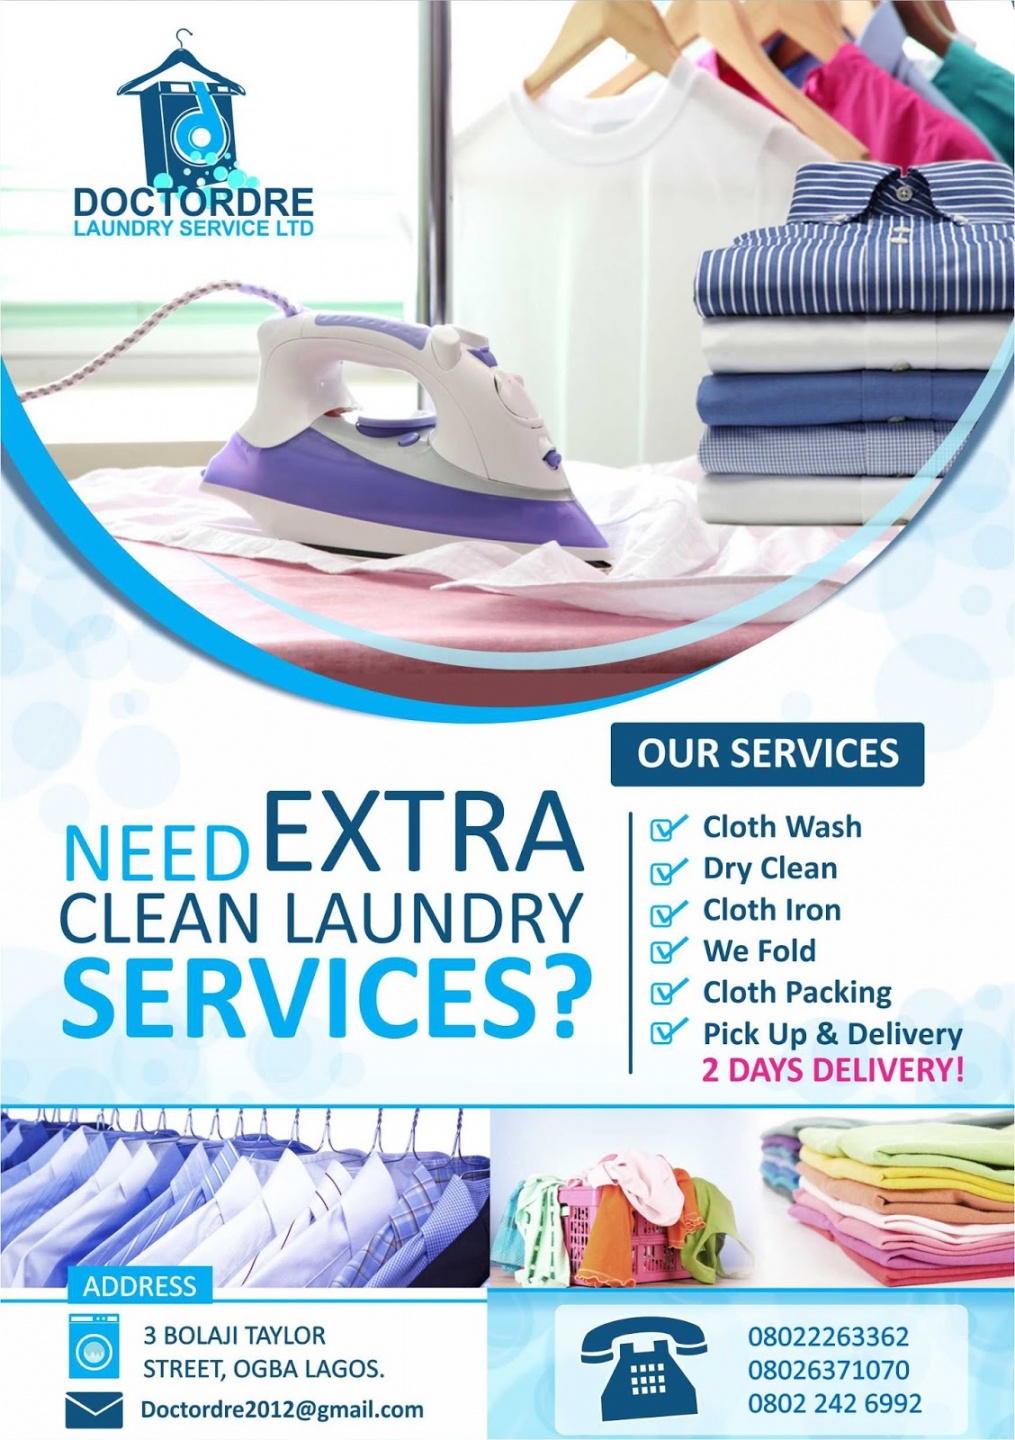 Editable Laundry Flyers Sample #c569237B0C50 Idealmedia With Regard To Ironing Service Flyer Template